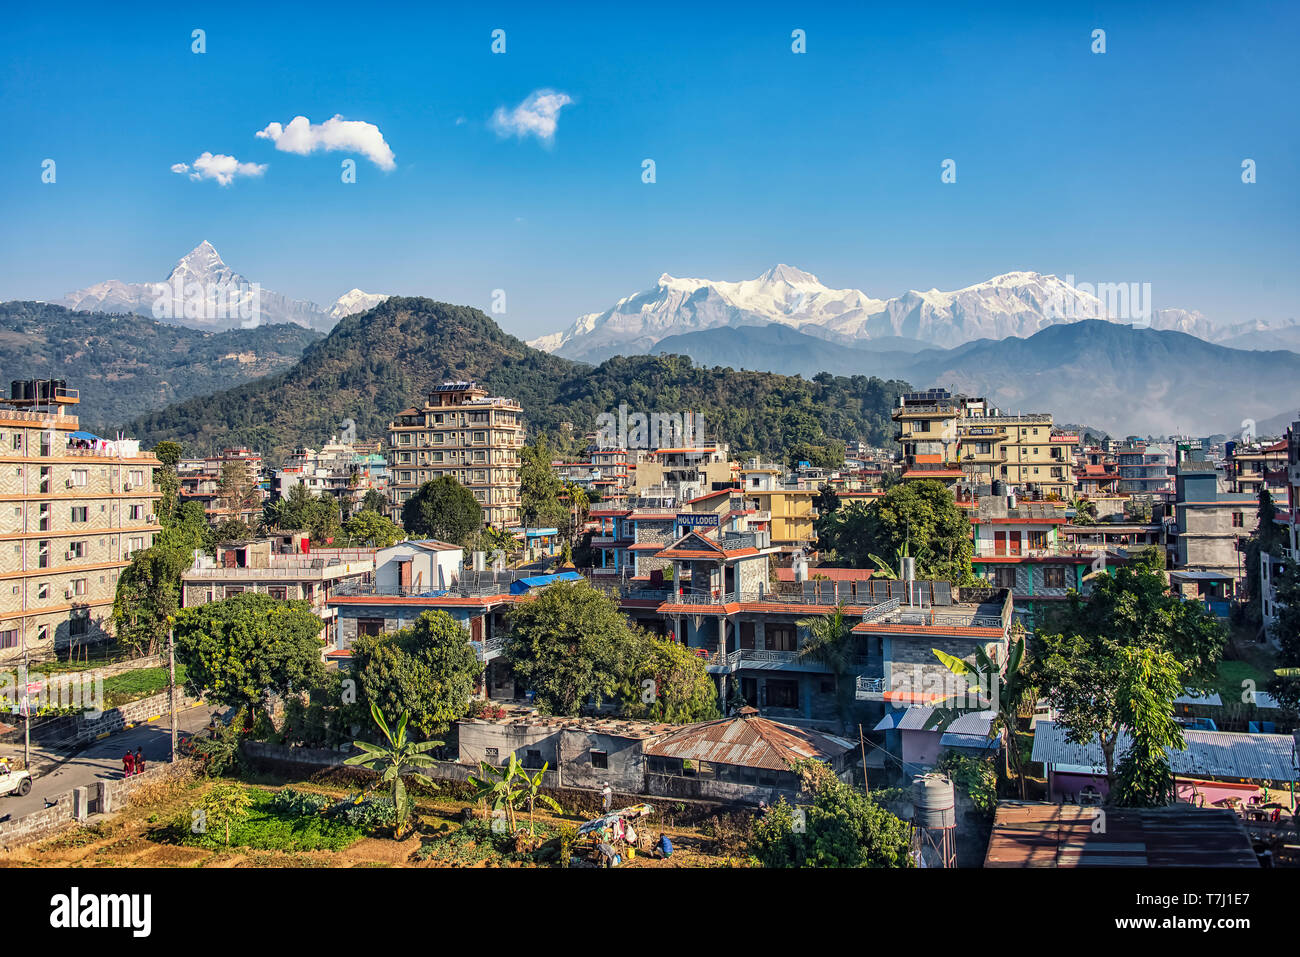 Himalaya mountain range viewed from Pokhara city - Stock Image